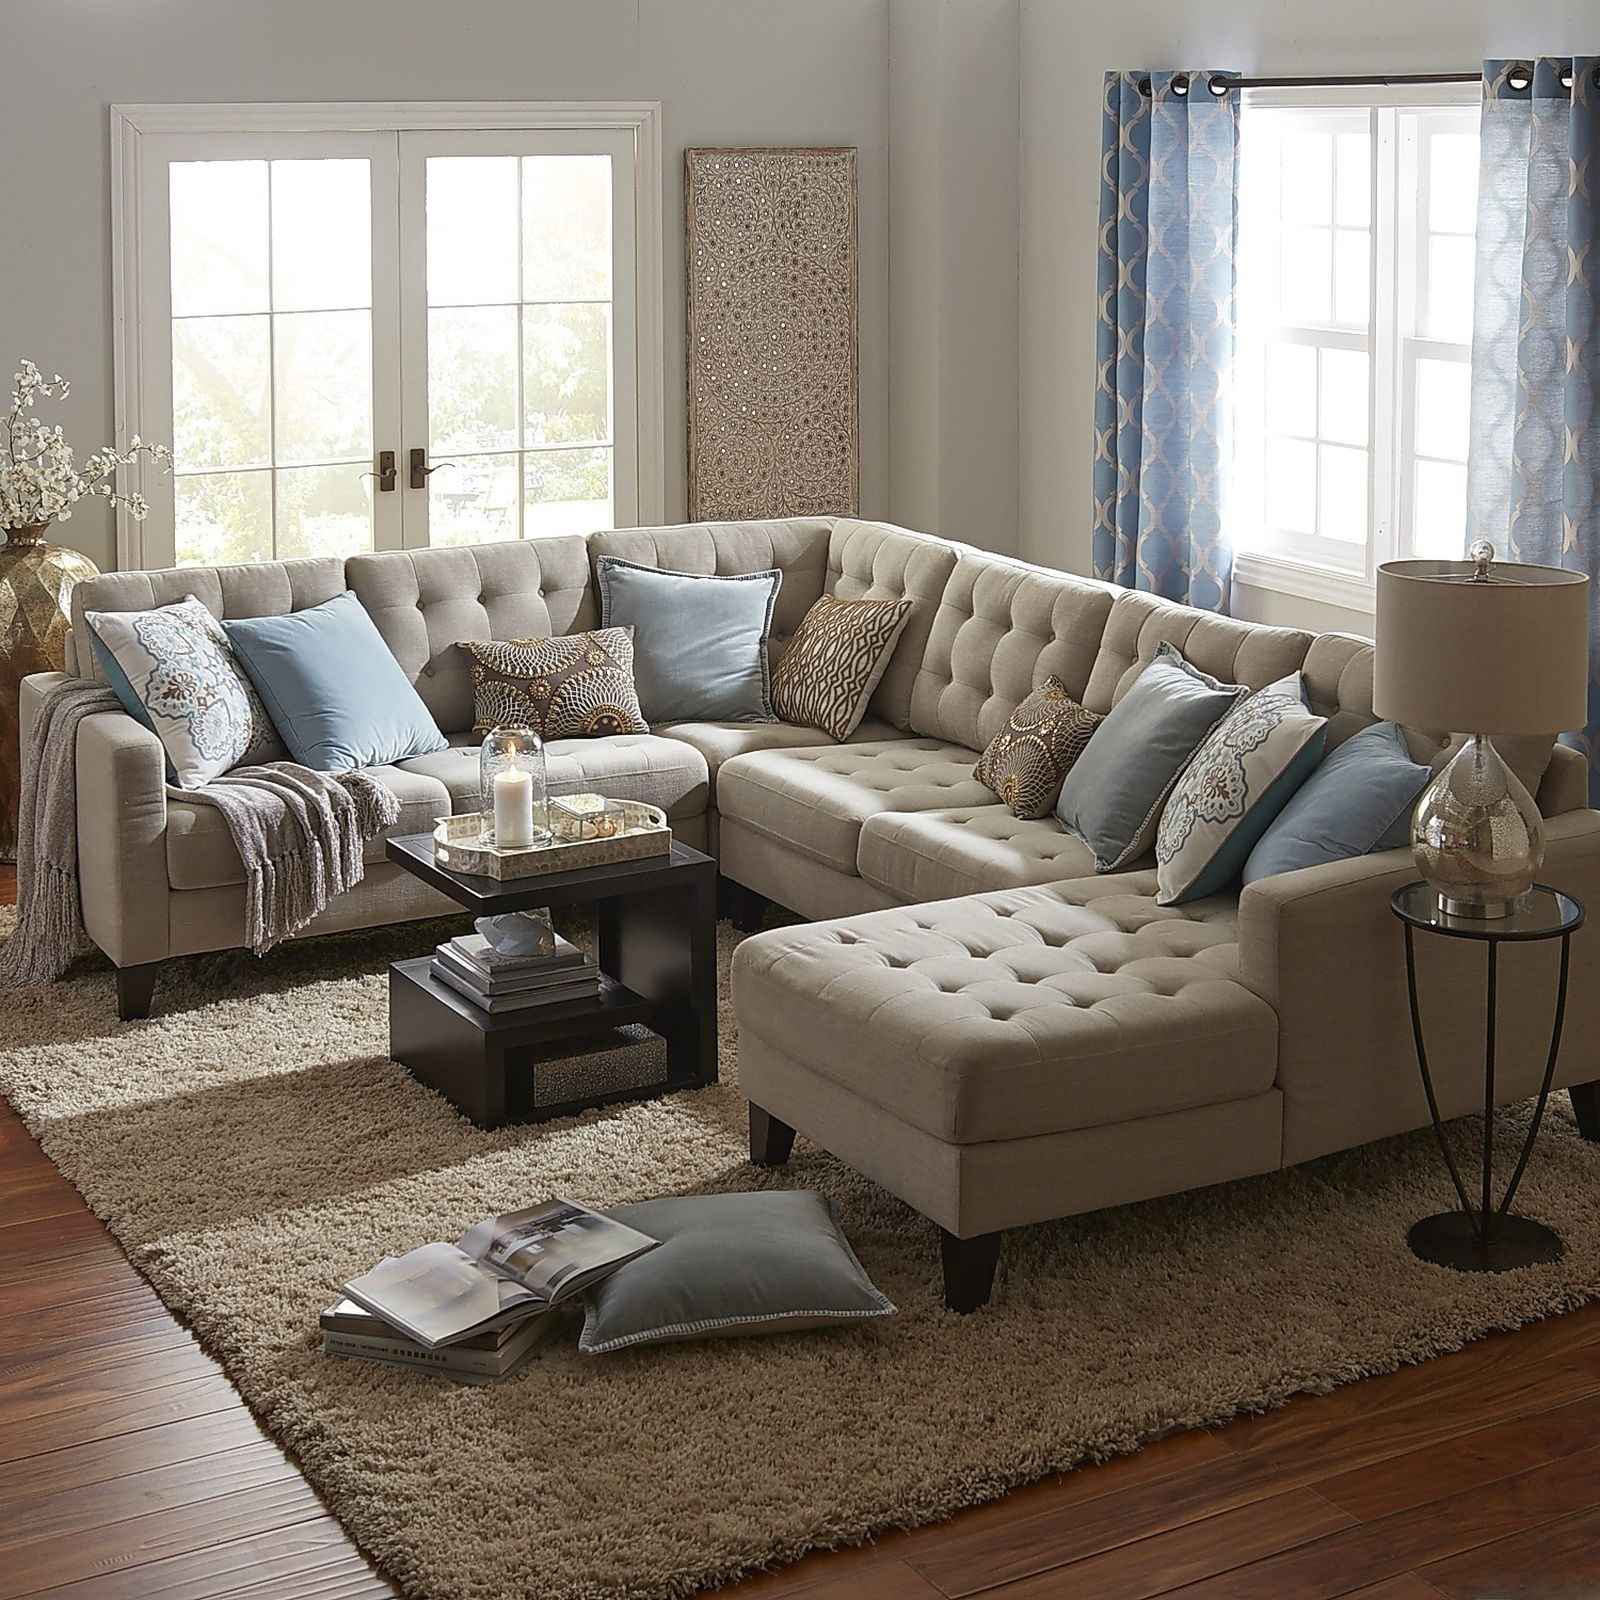 Places To Buy Couches: 29 Of The Best Places To Buy A Sofa Online